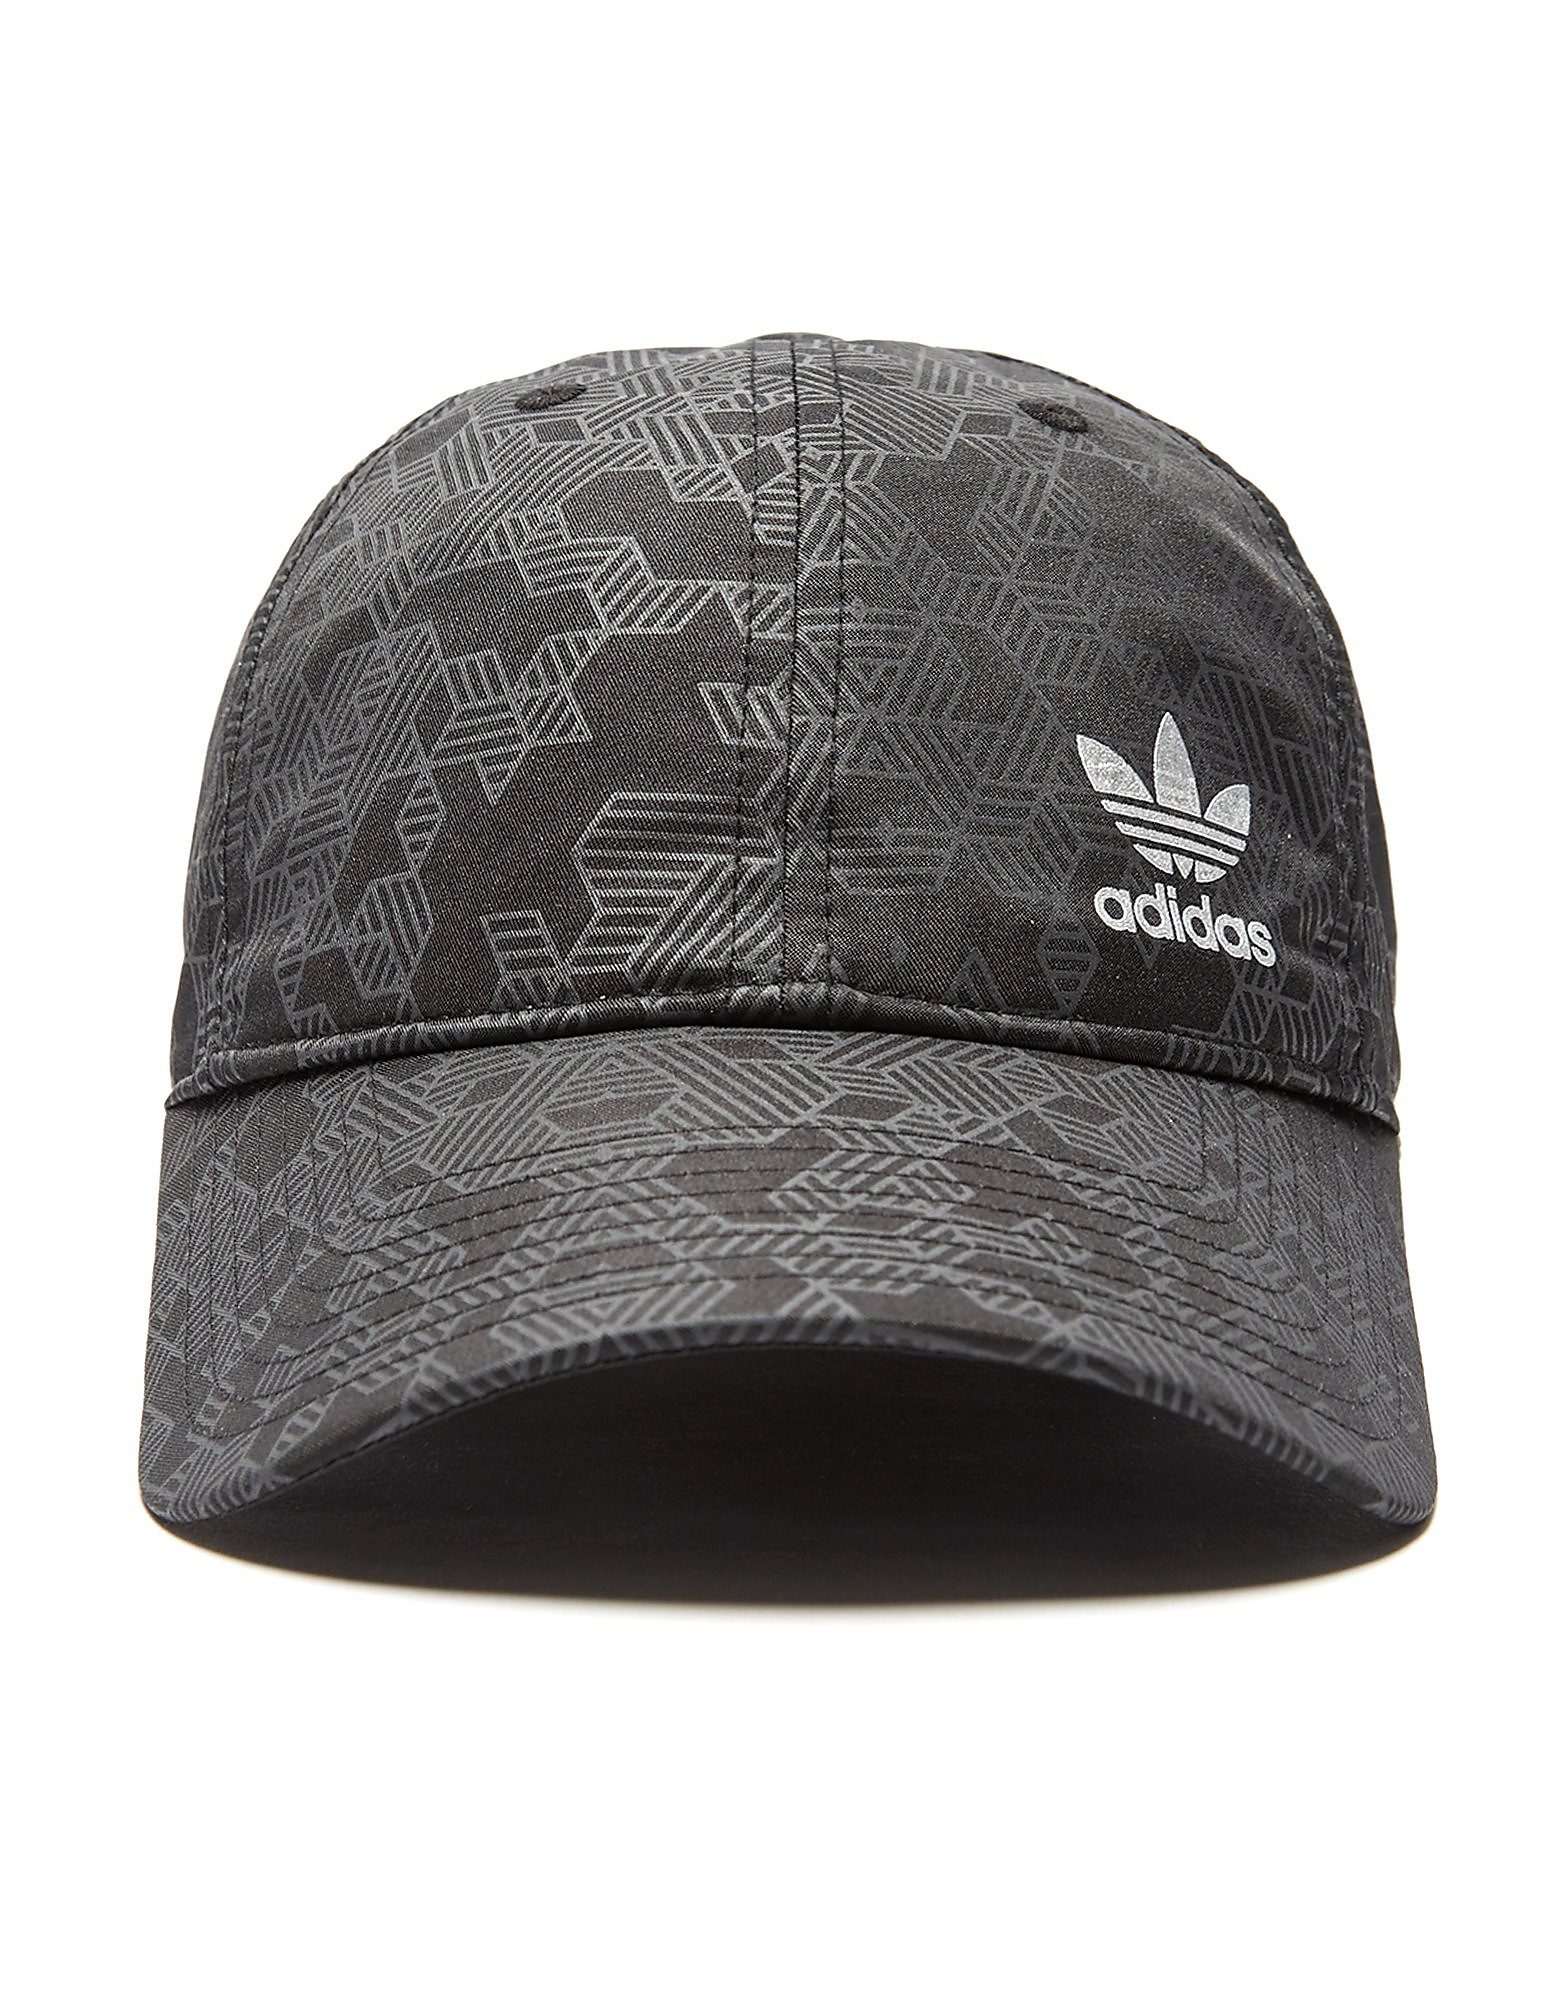 adidas Originals Casquette Street Run Homme